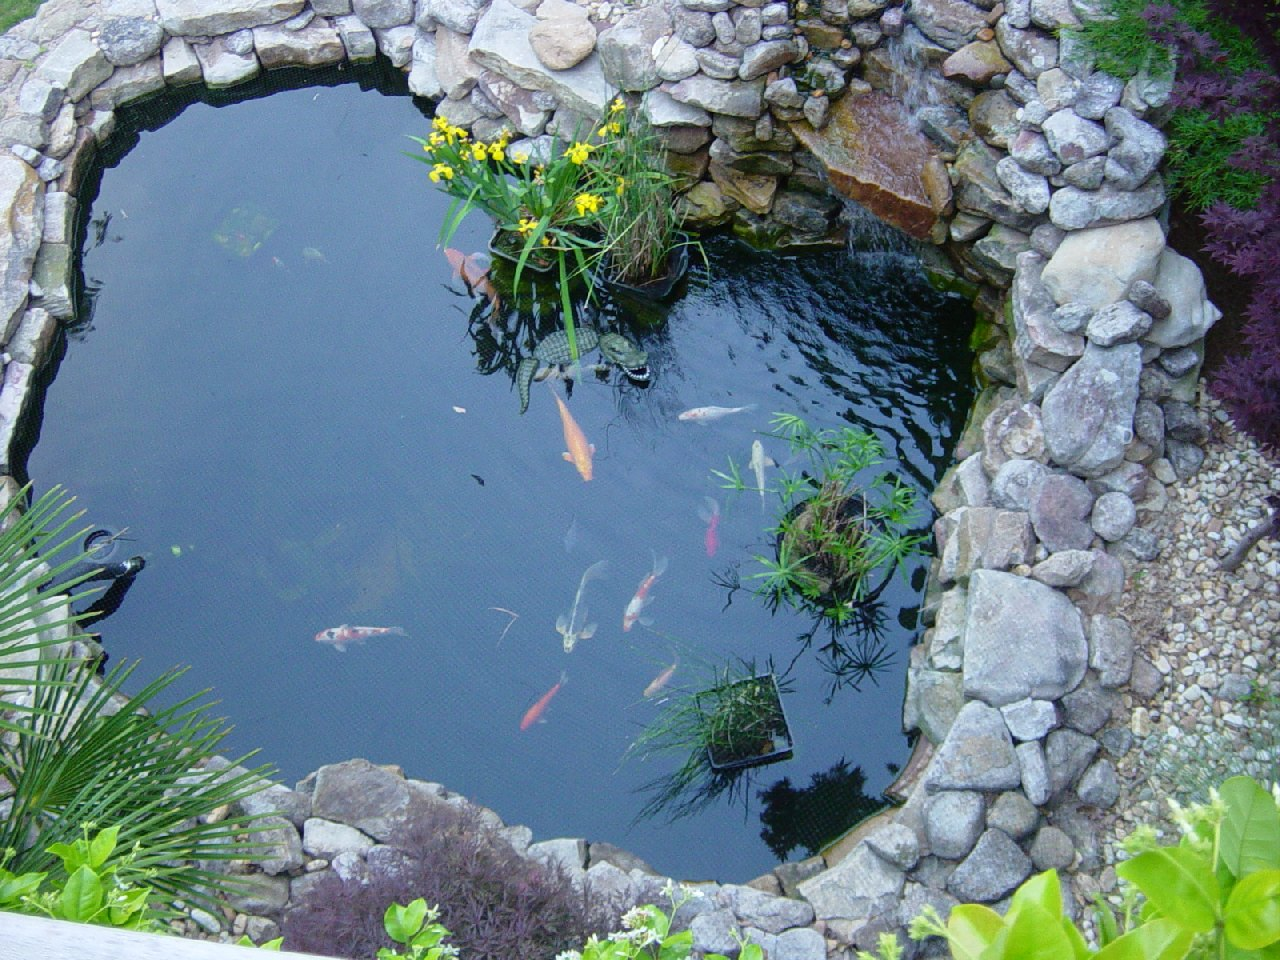 Luxury koi fish pond design ideas home trendy for Koi pond design ideas